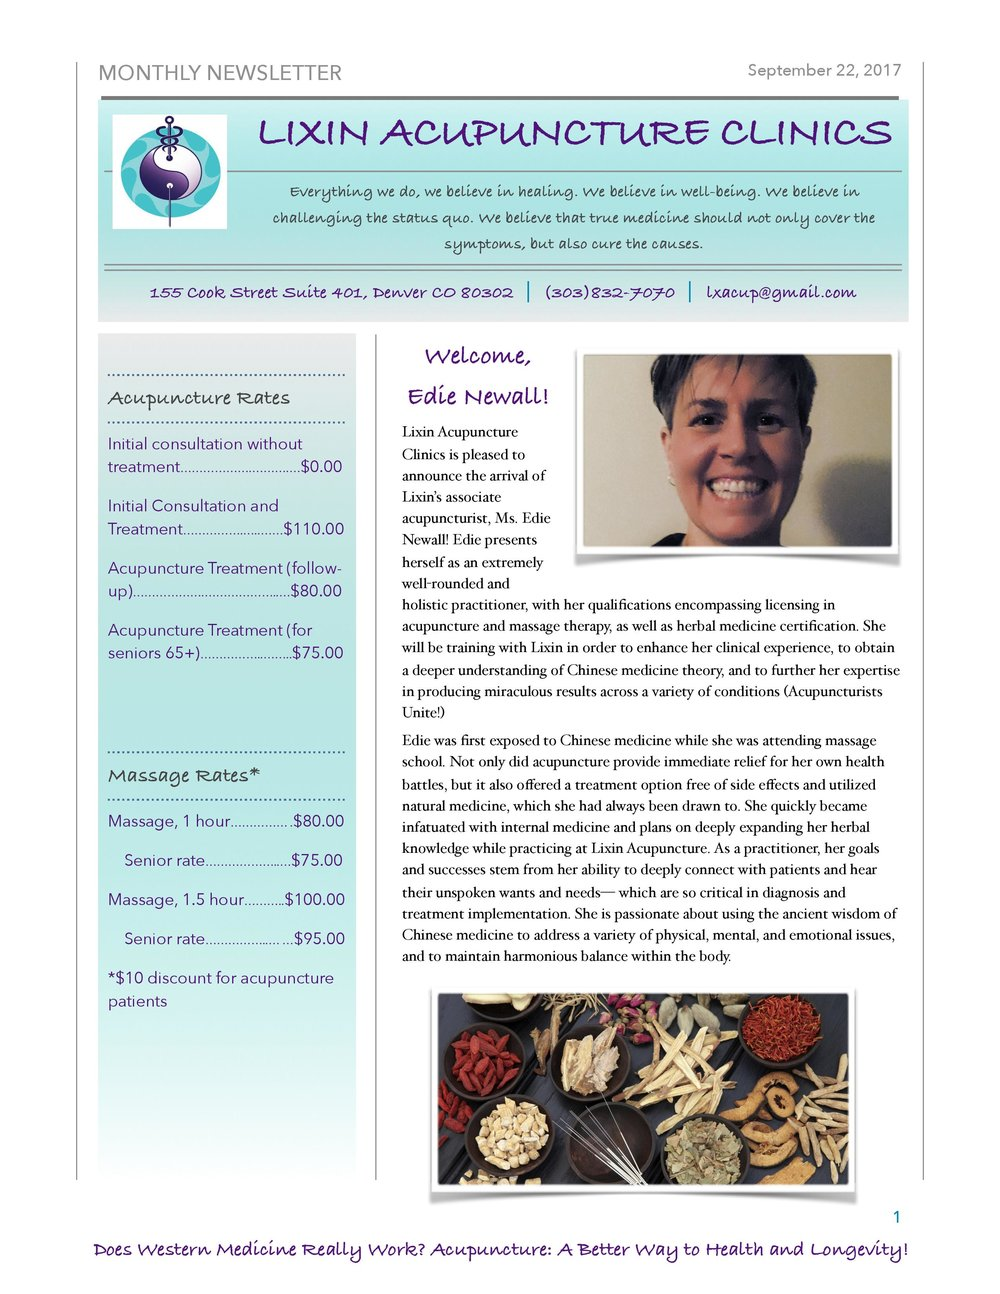 September Newsletter-page-001-2.jpg